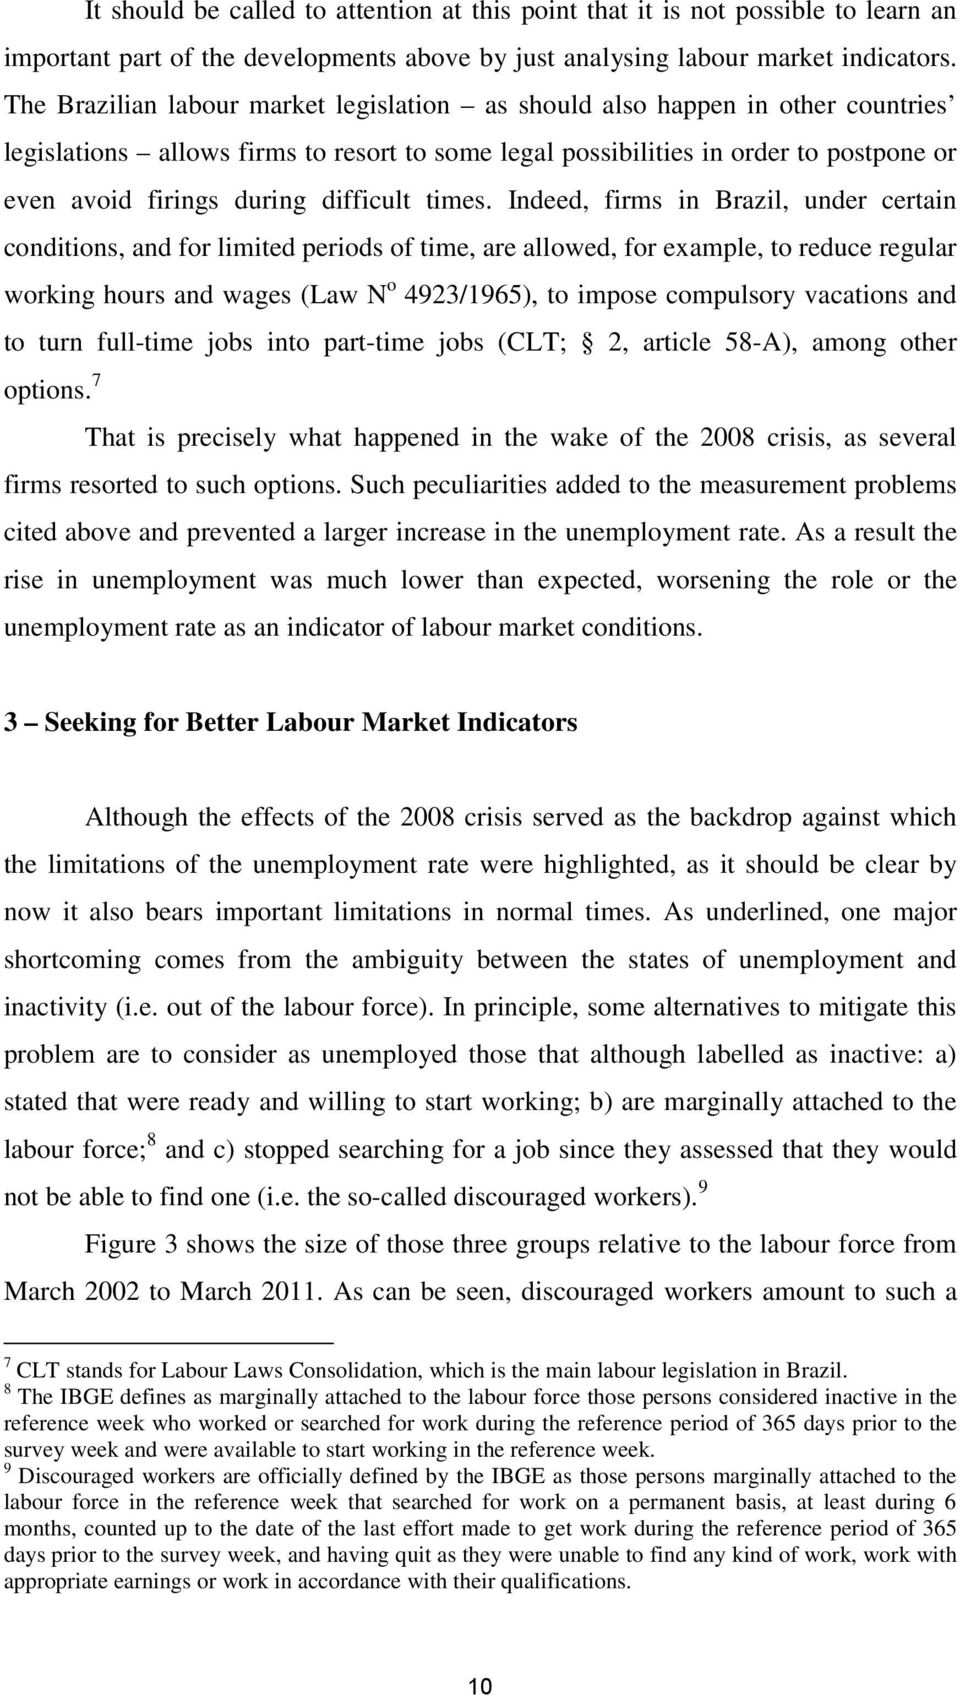 by just analysing labour market indicators.